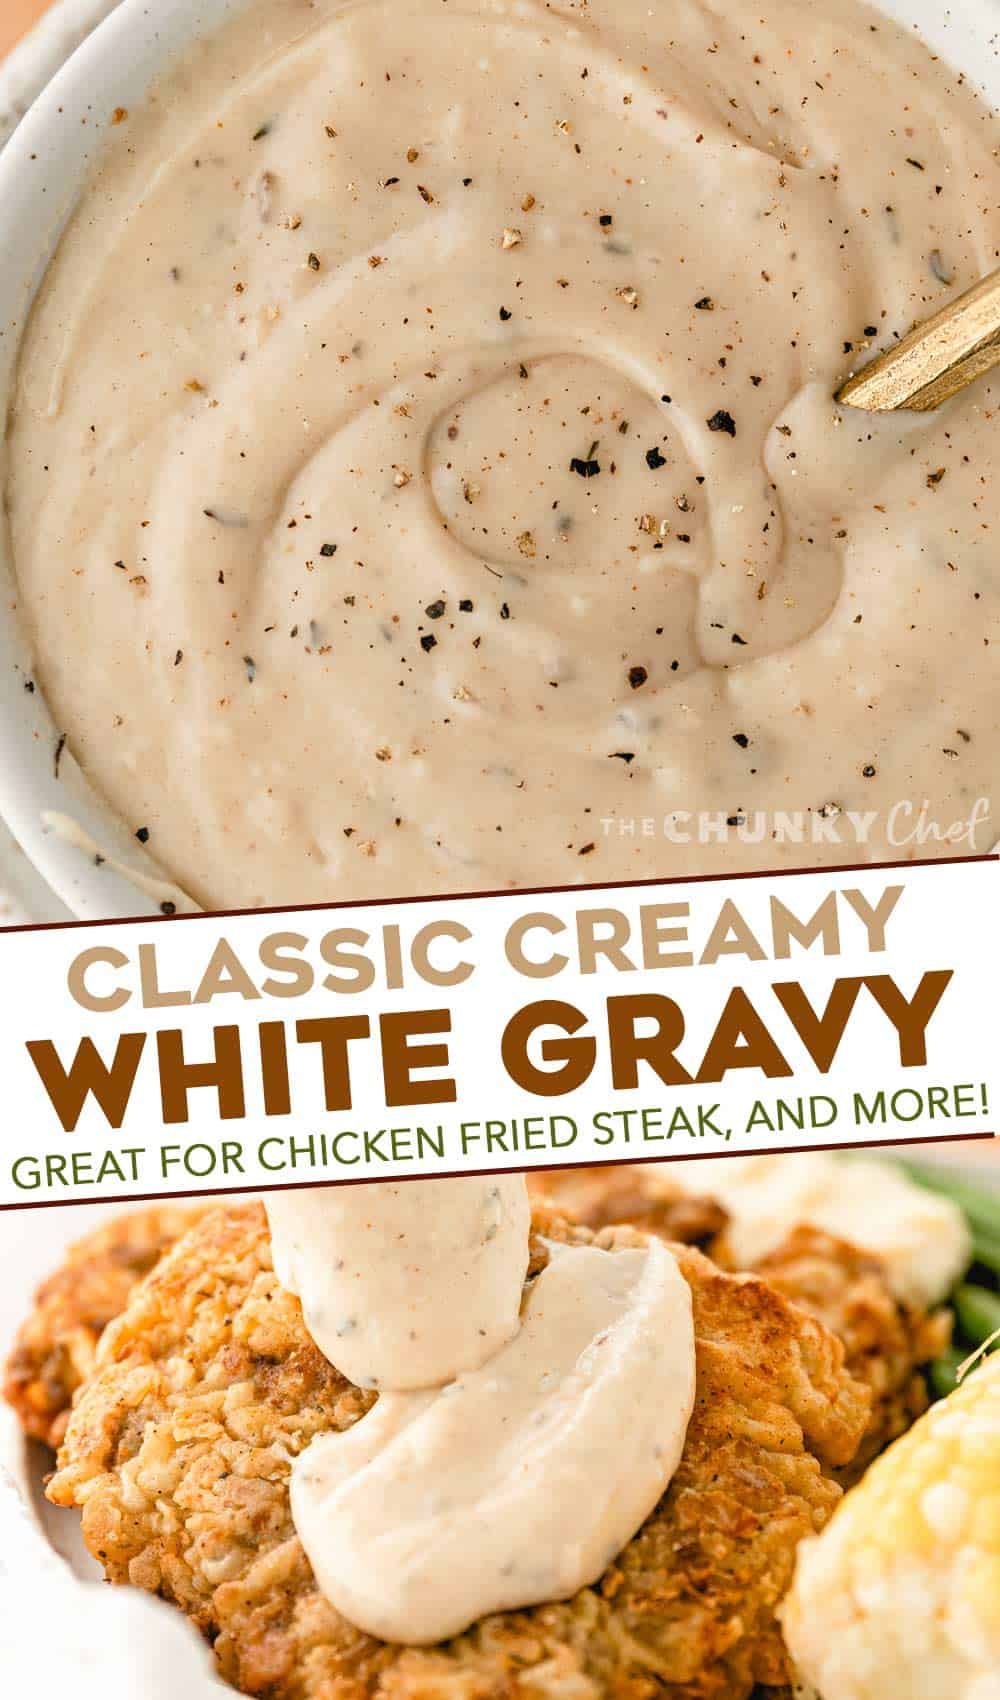 overhead view of white gravy in bowl sprinkled with black pepper